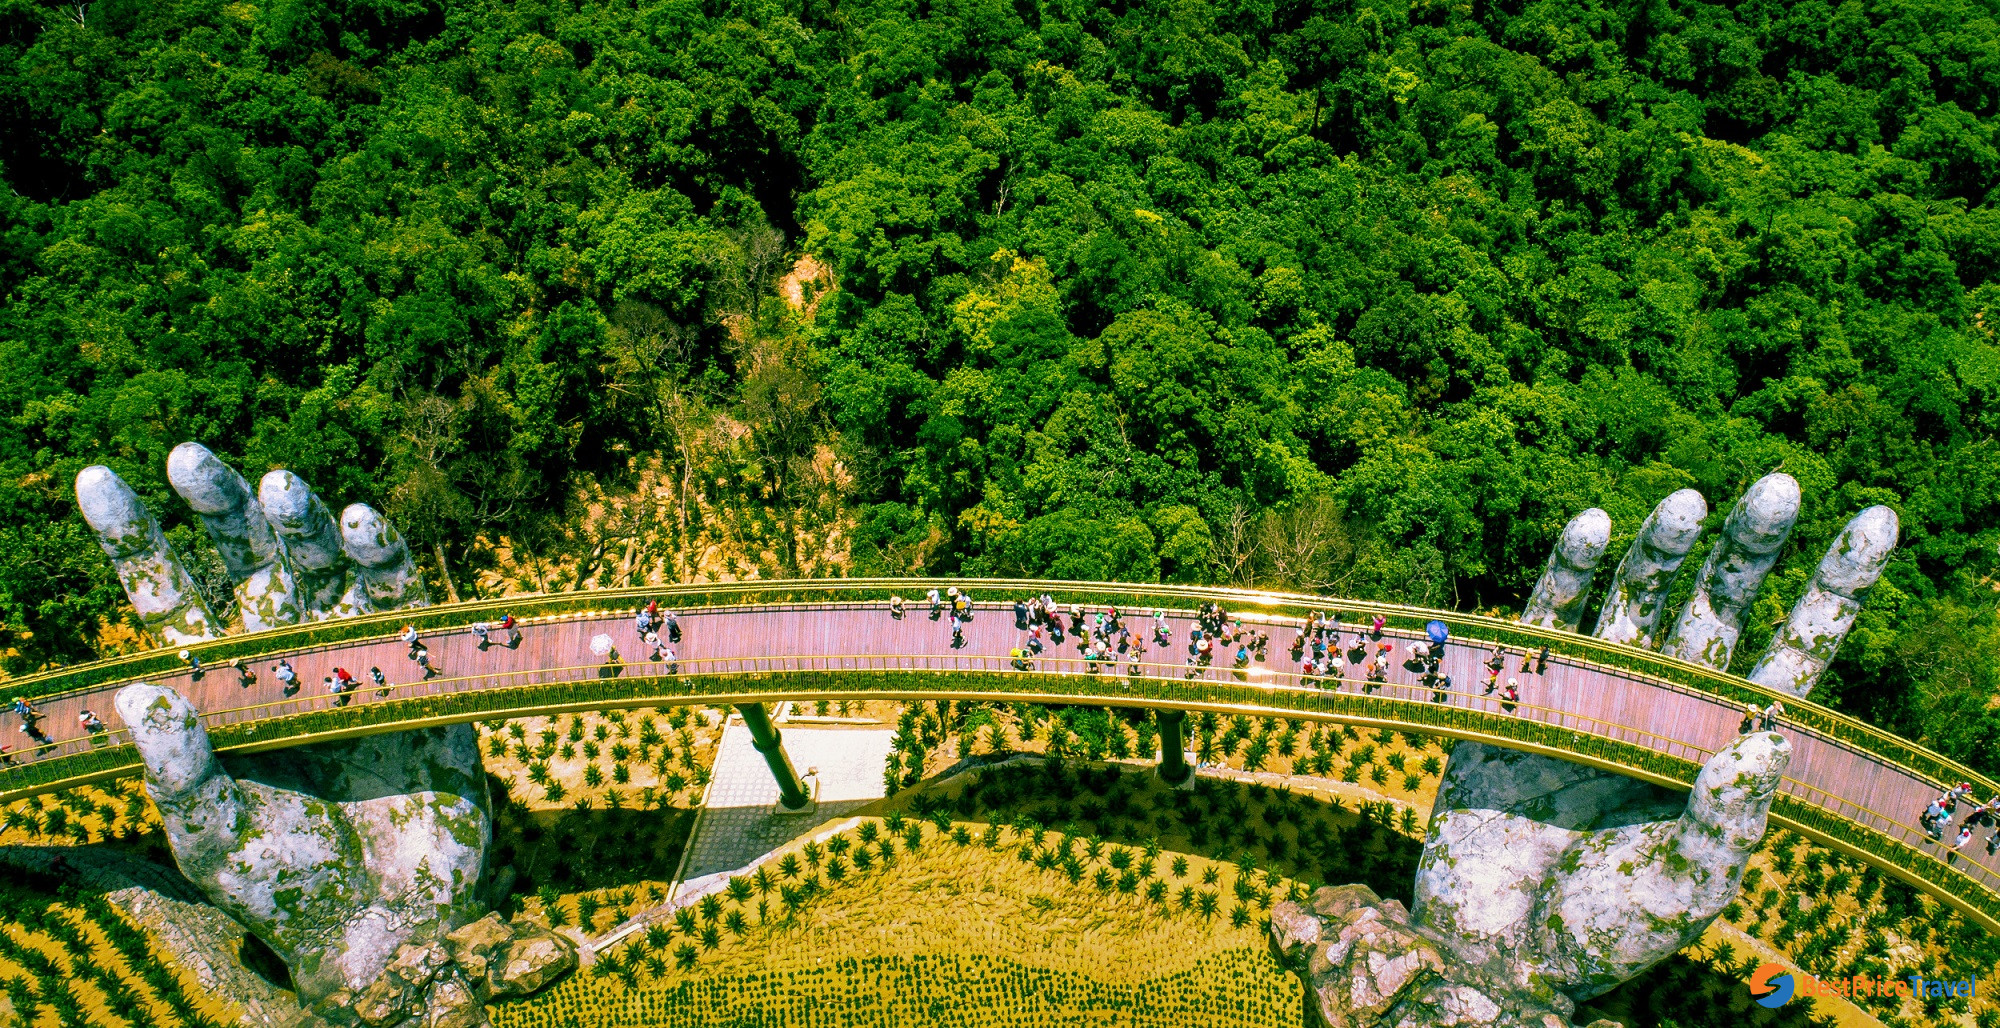 Golden Bridge from above